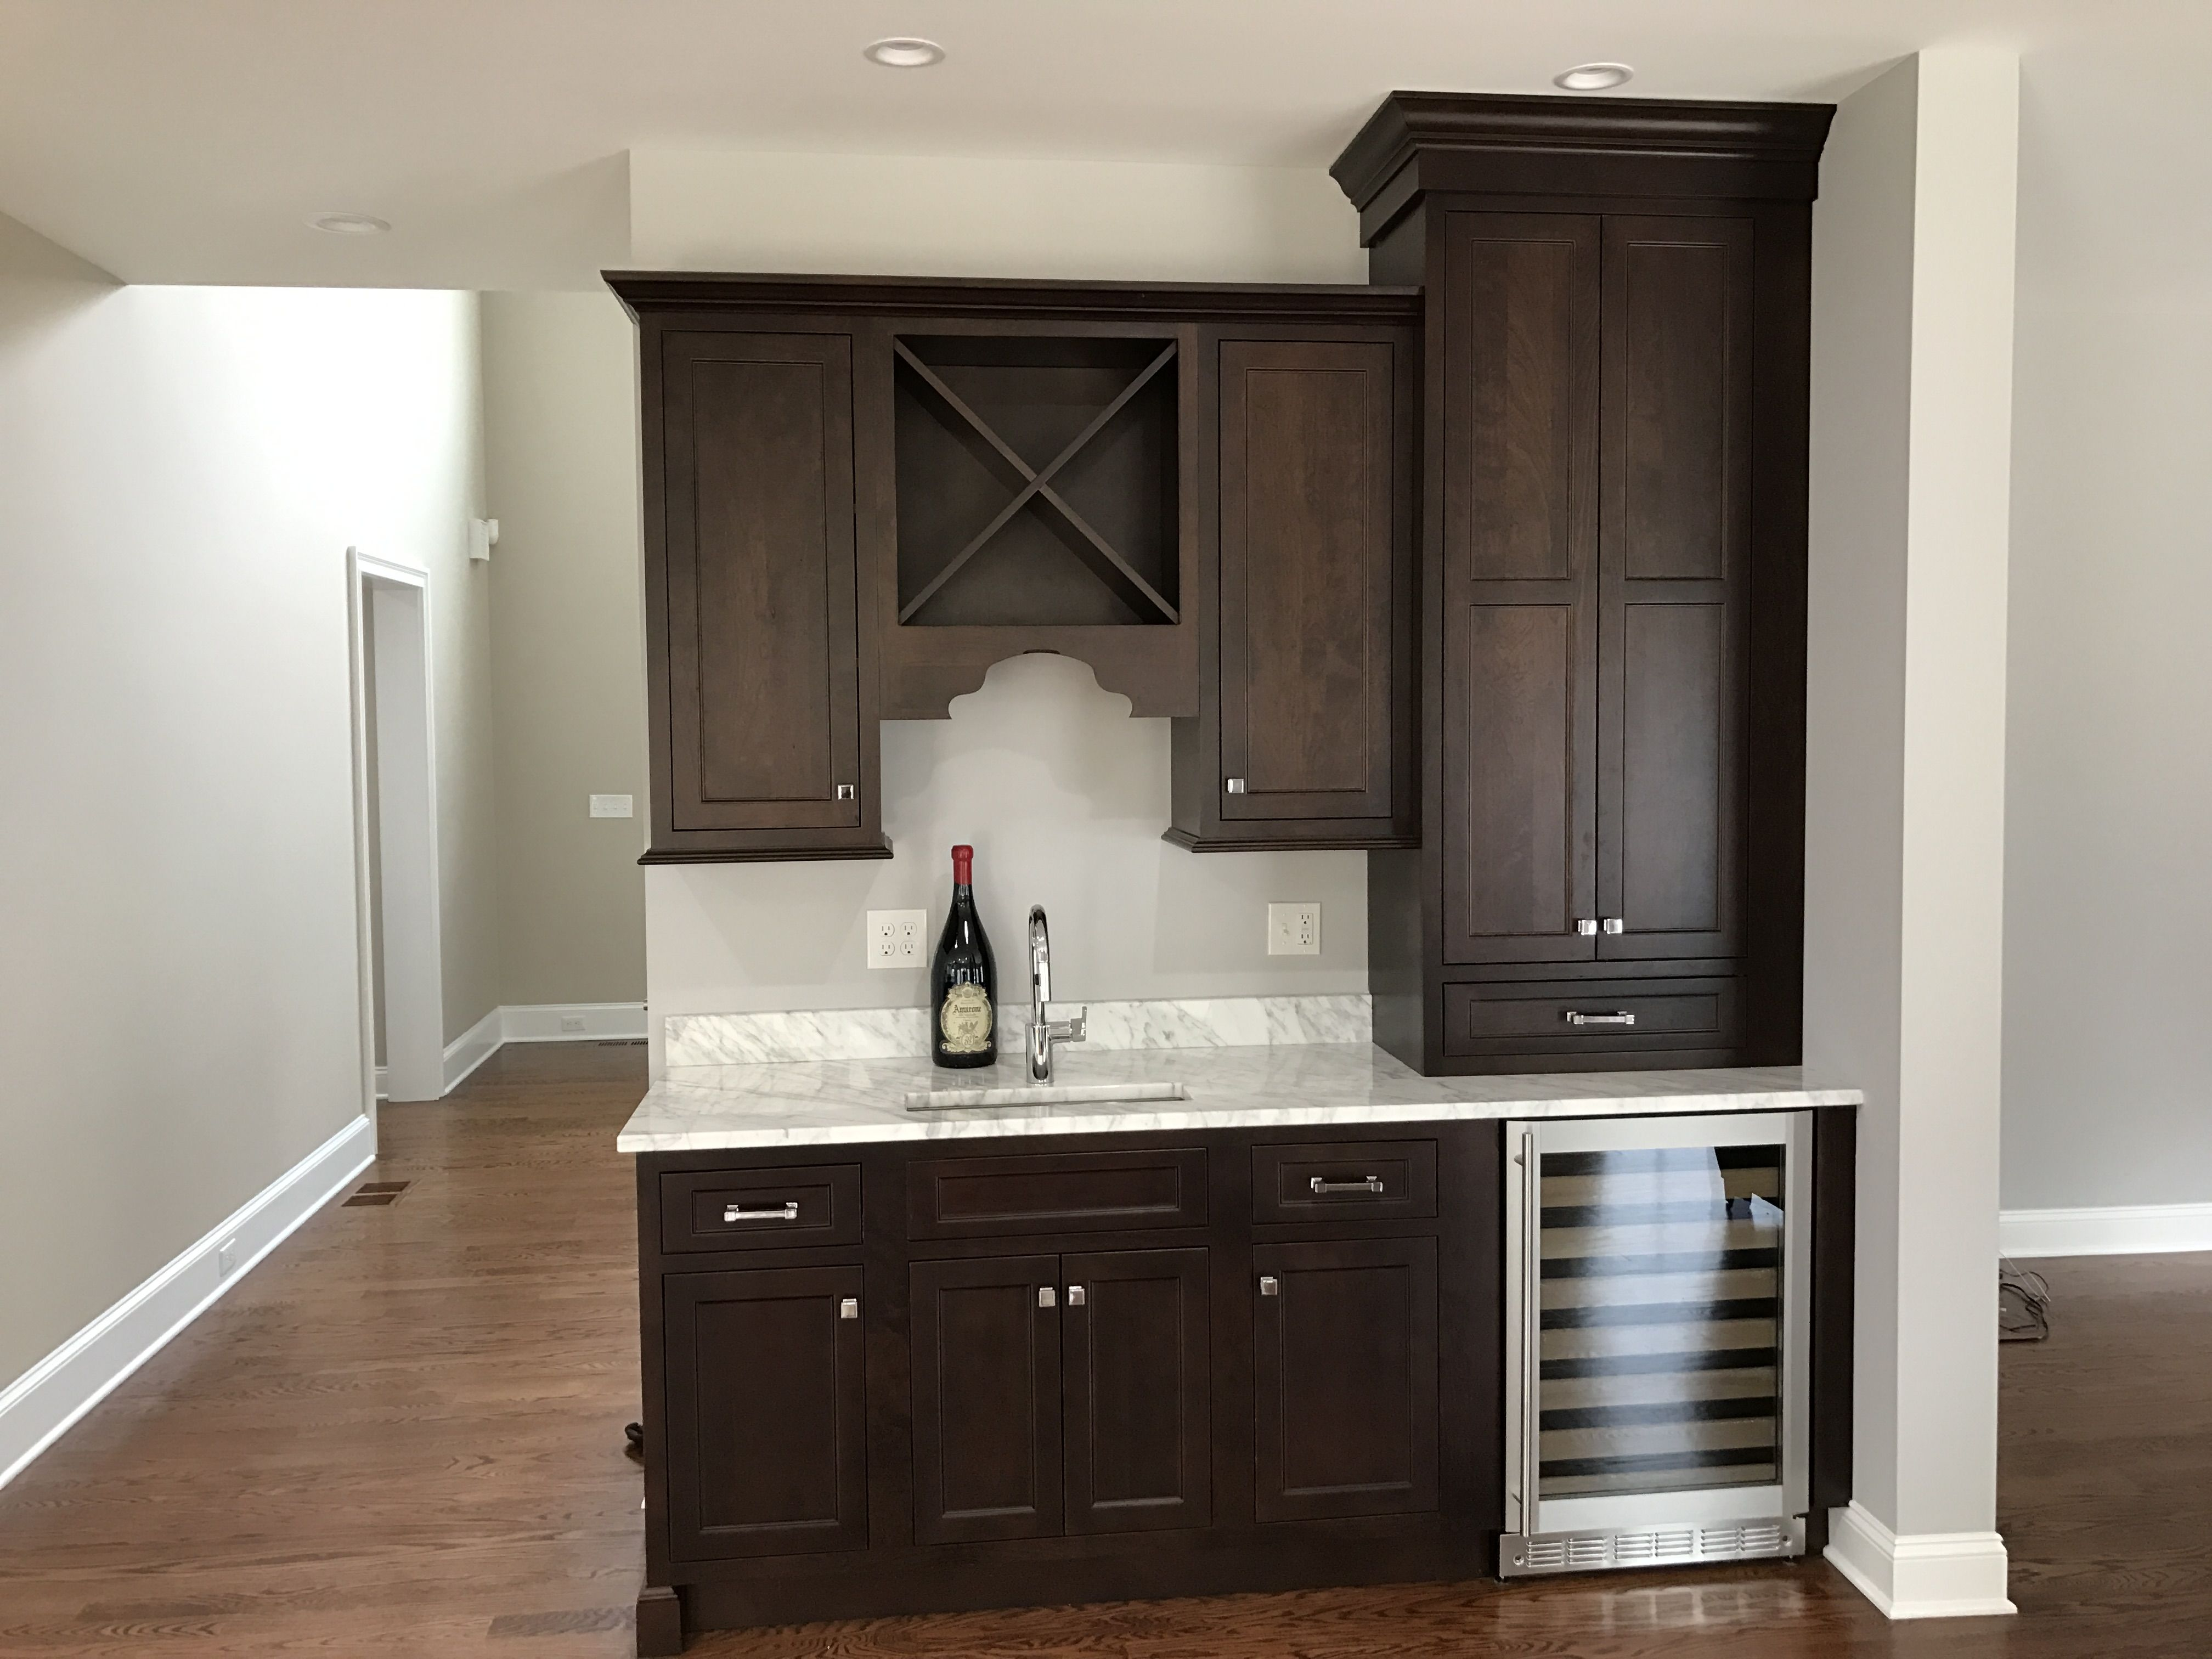 Pin By Curtiss Woodworking Kitchen An On Our Projects Woodworking Kitchen Cabinets Kitchen Projects Design Kitchen Inspirations